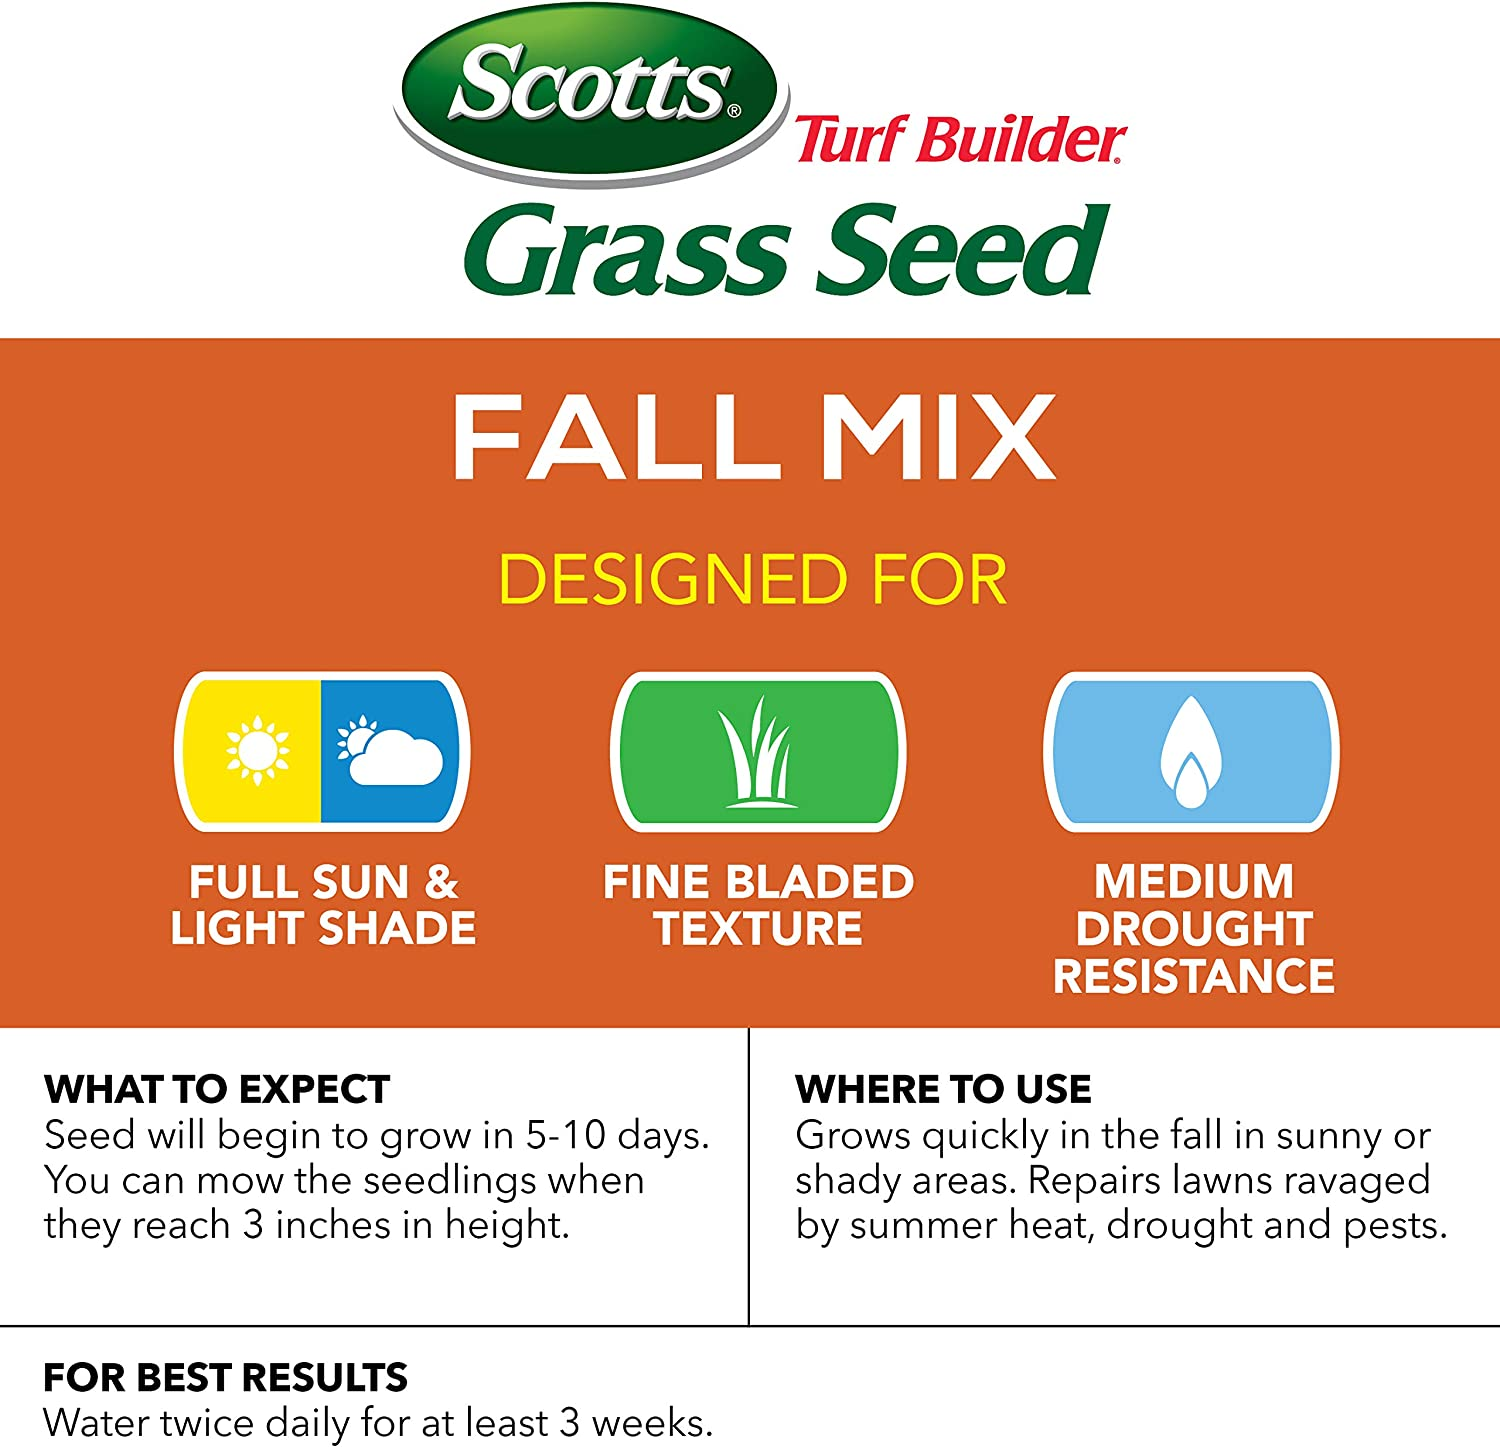 Scotts Turf Builder Grass Seed Fall Mix - 3 lb., Establishes Quickly to Help Lawn Recover From Summer Stress, Thickens and Strengthens To Help Prevent Future Weeds, Seeds up to 1, 200 sq. ft. : Grass Plants : Garden & Outdoor